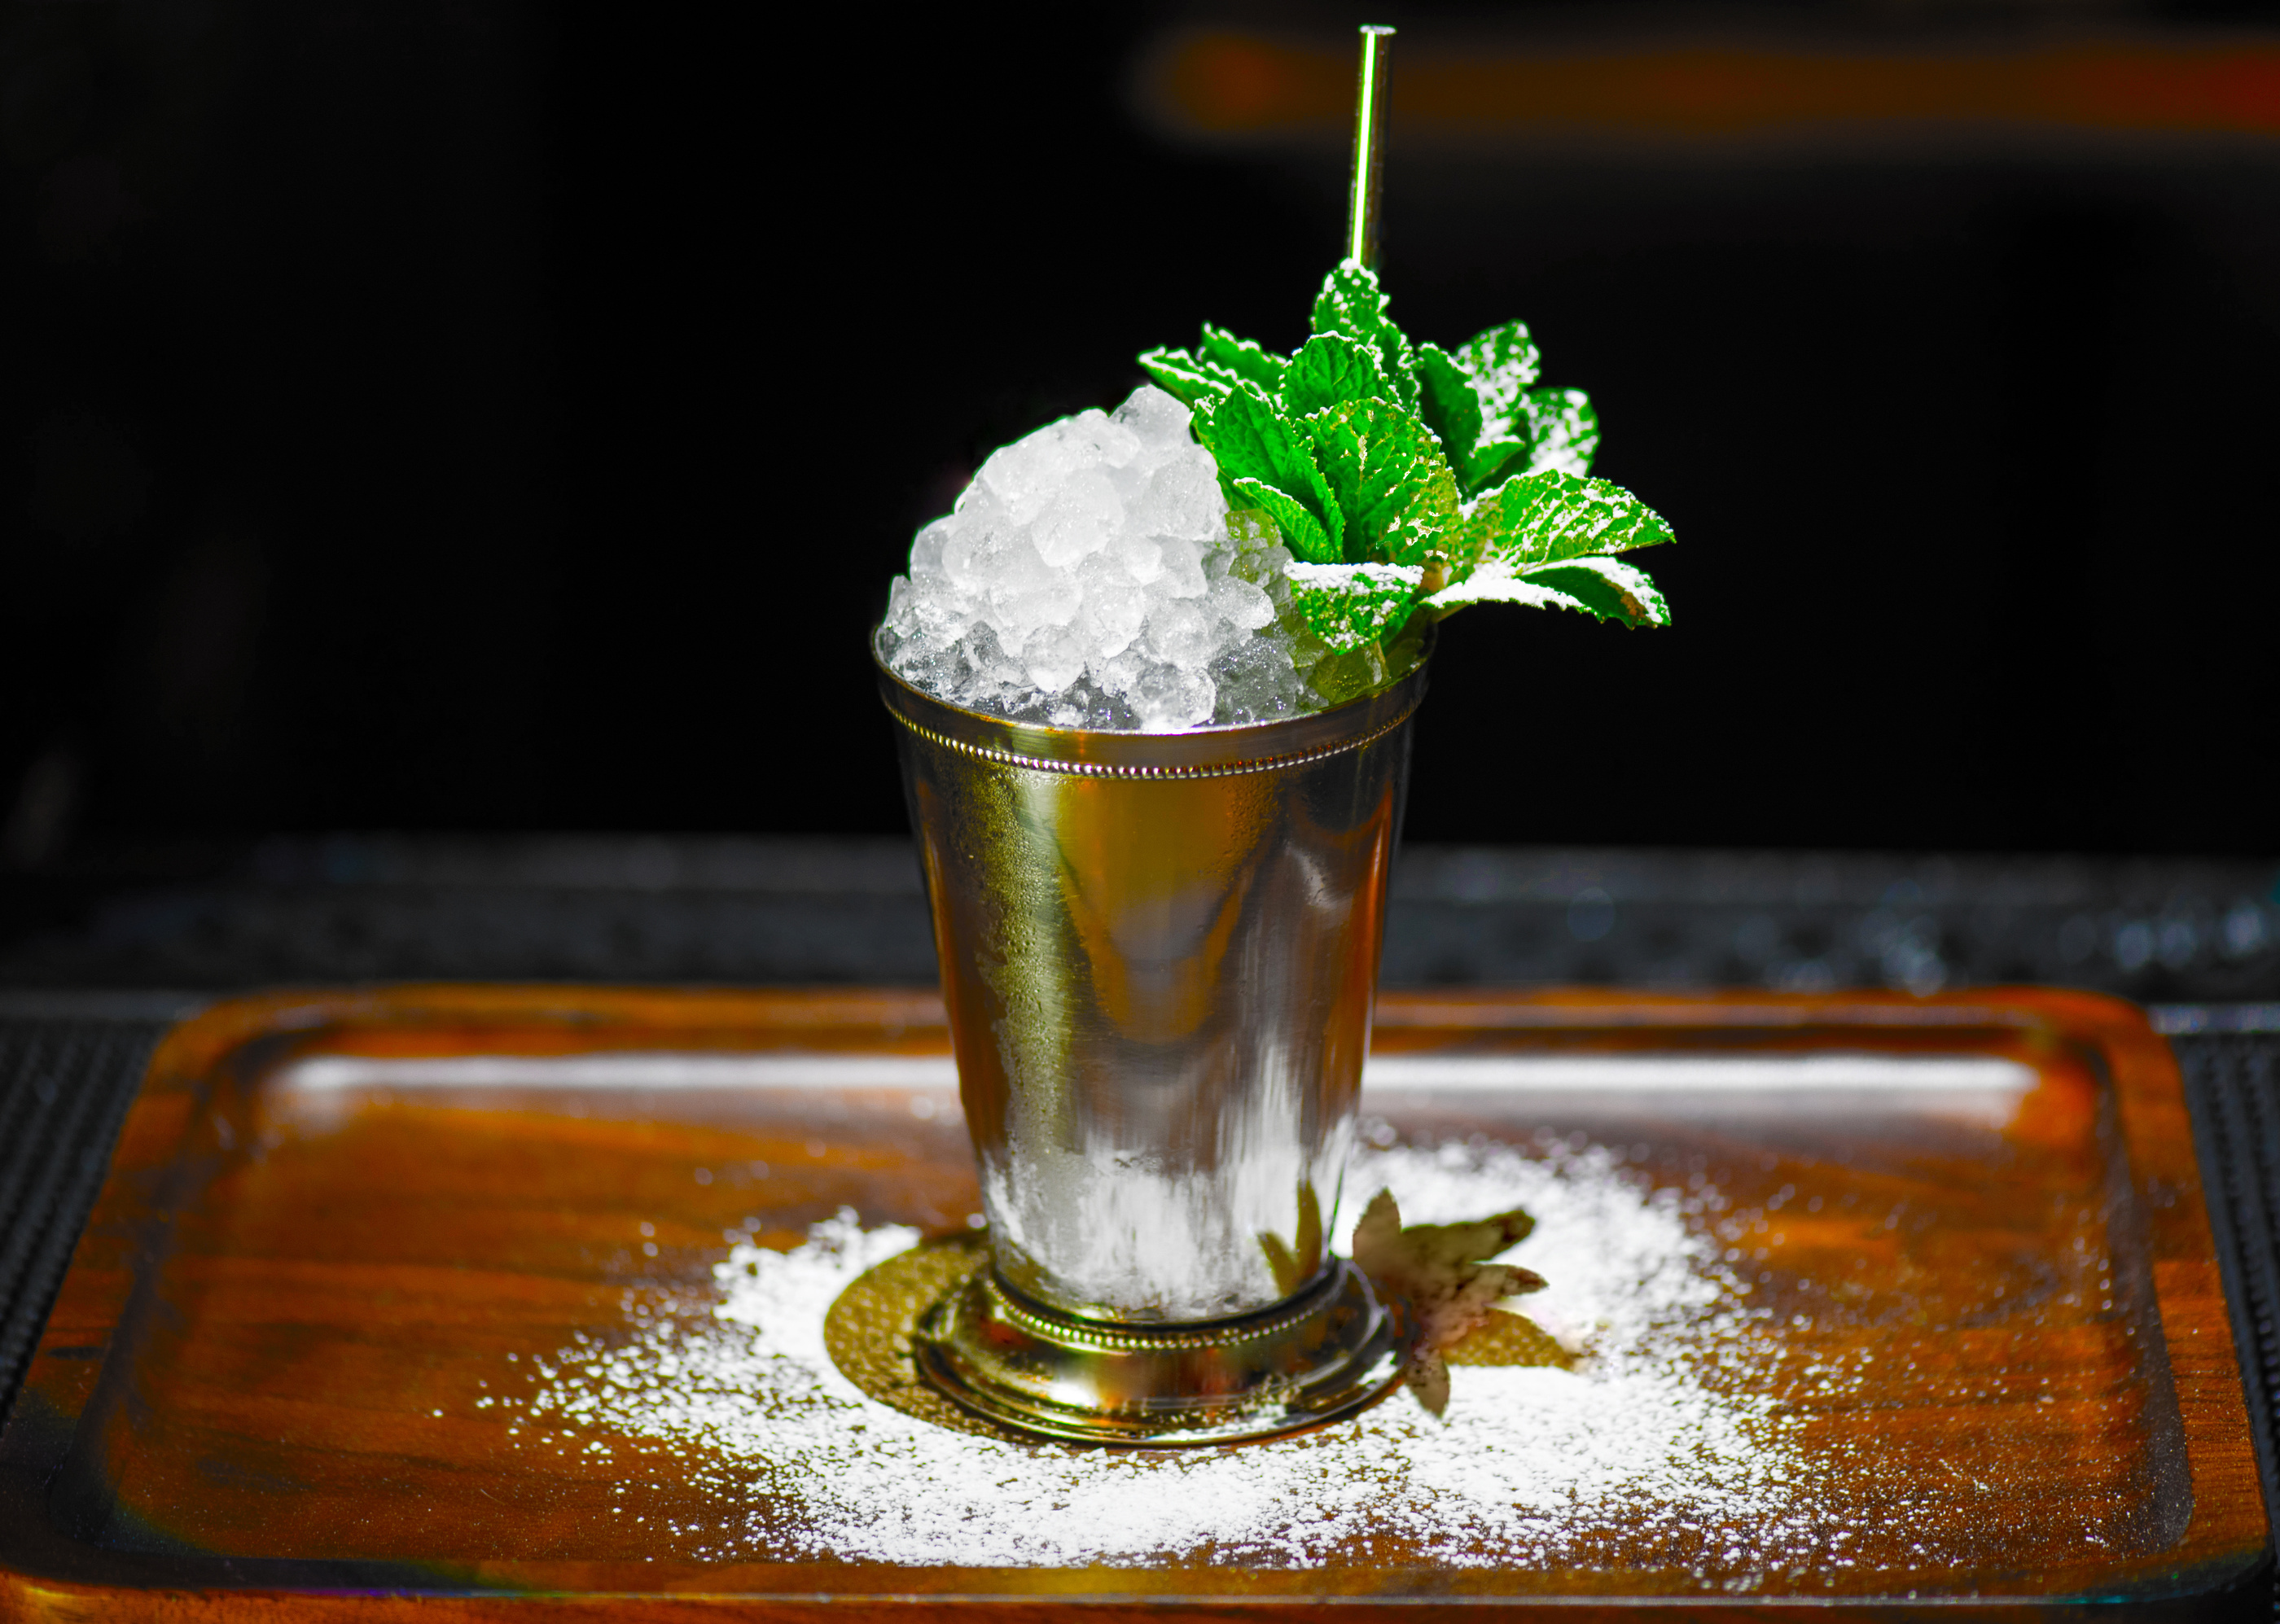 A cocktail in a steel can with a pile of crushed ice and green mint.